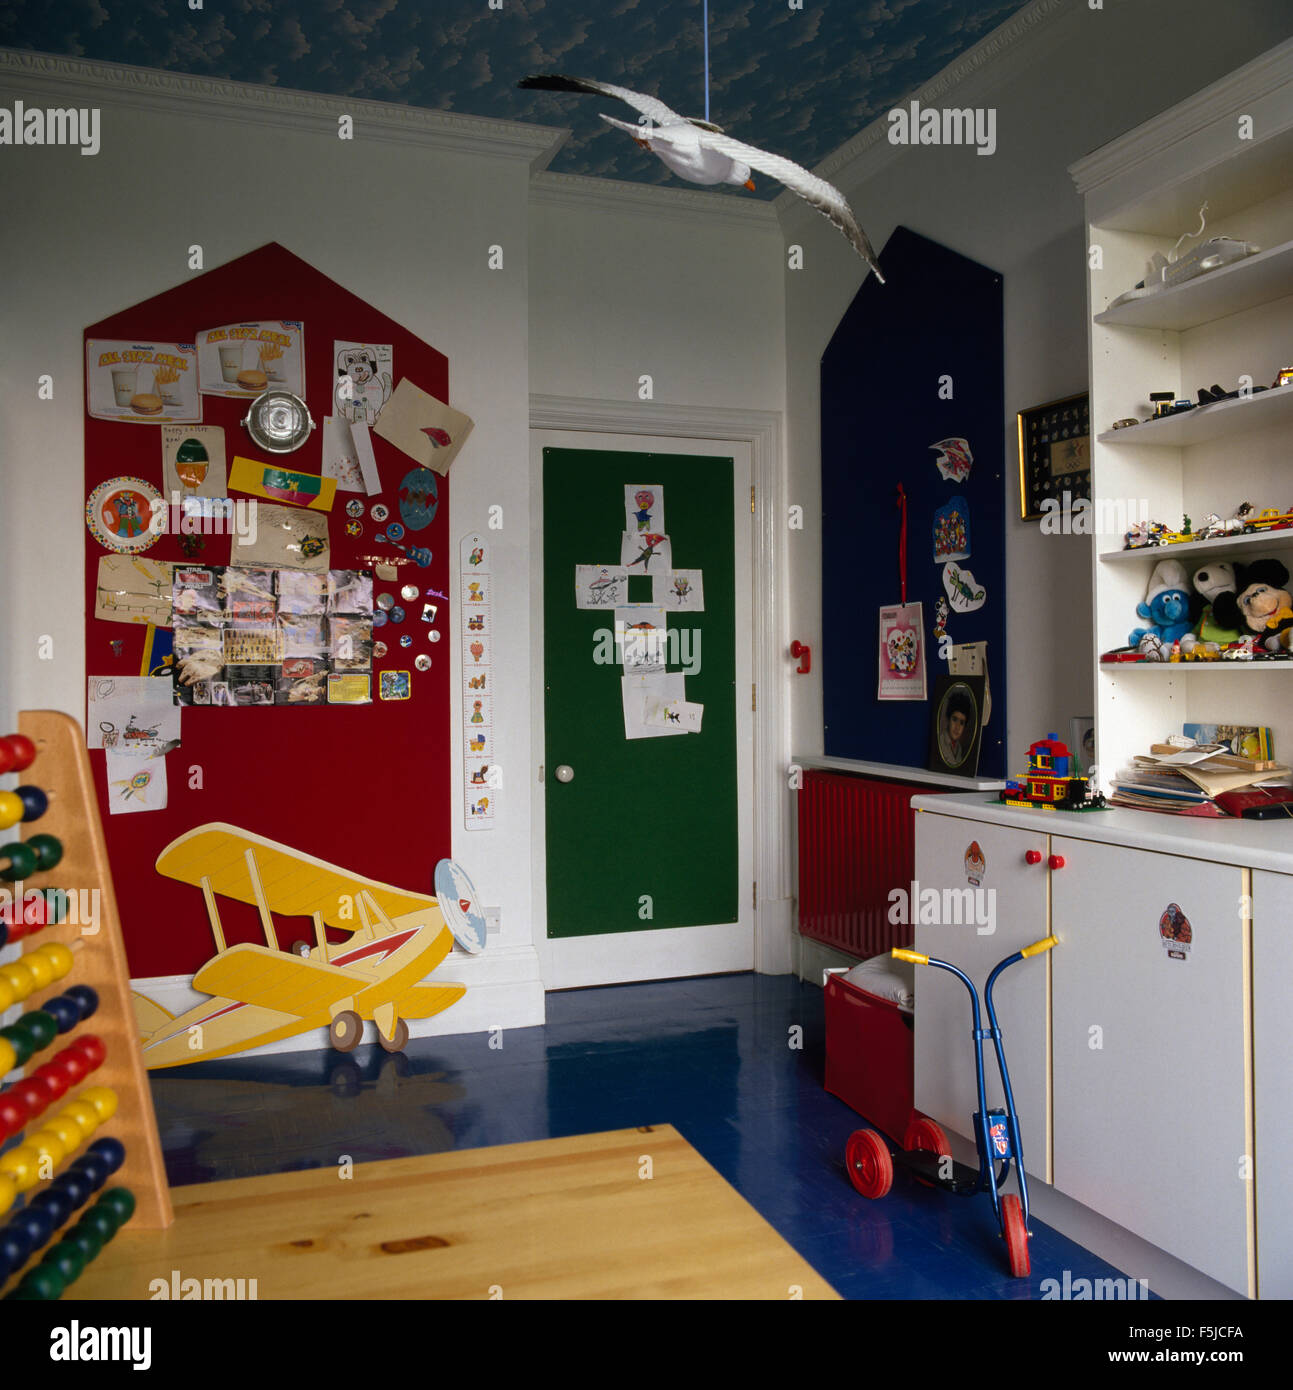 Scooter and toy bi-plane in children's eighties playroom - Stock Image